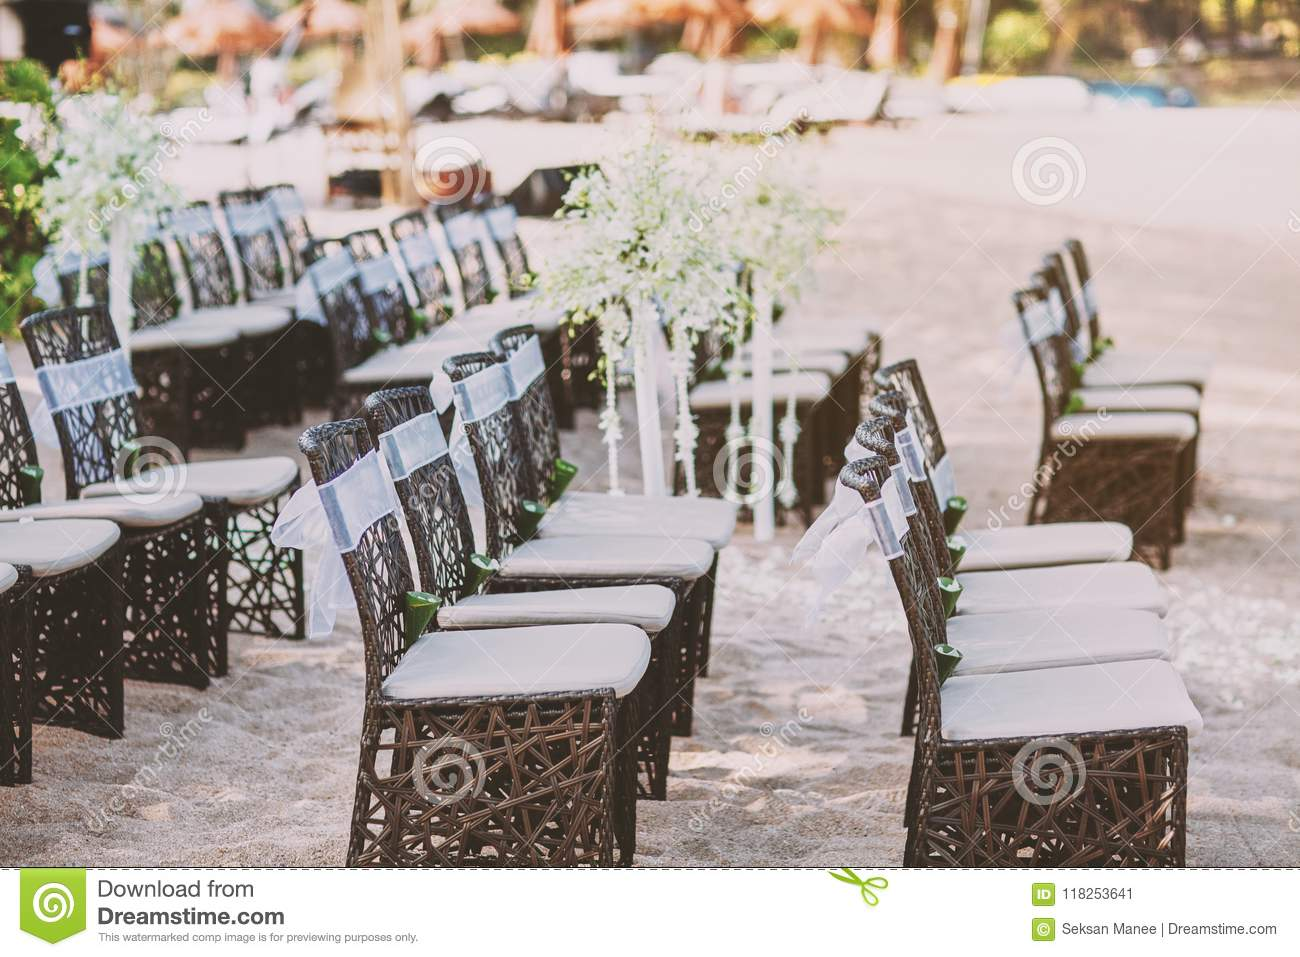 Beach Wedding Wooden Chairs Arrangement For Wedding Venue On The Sand Stock Image Image Of Beach Guest 118253641